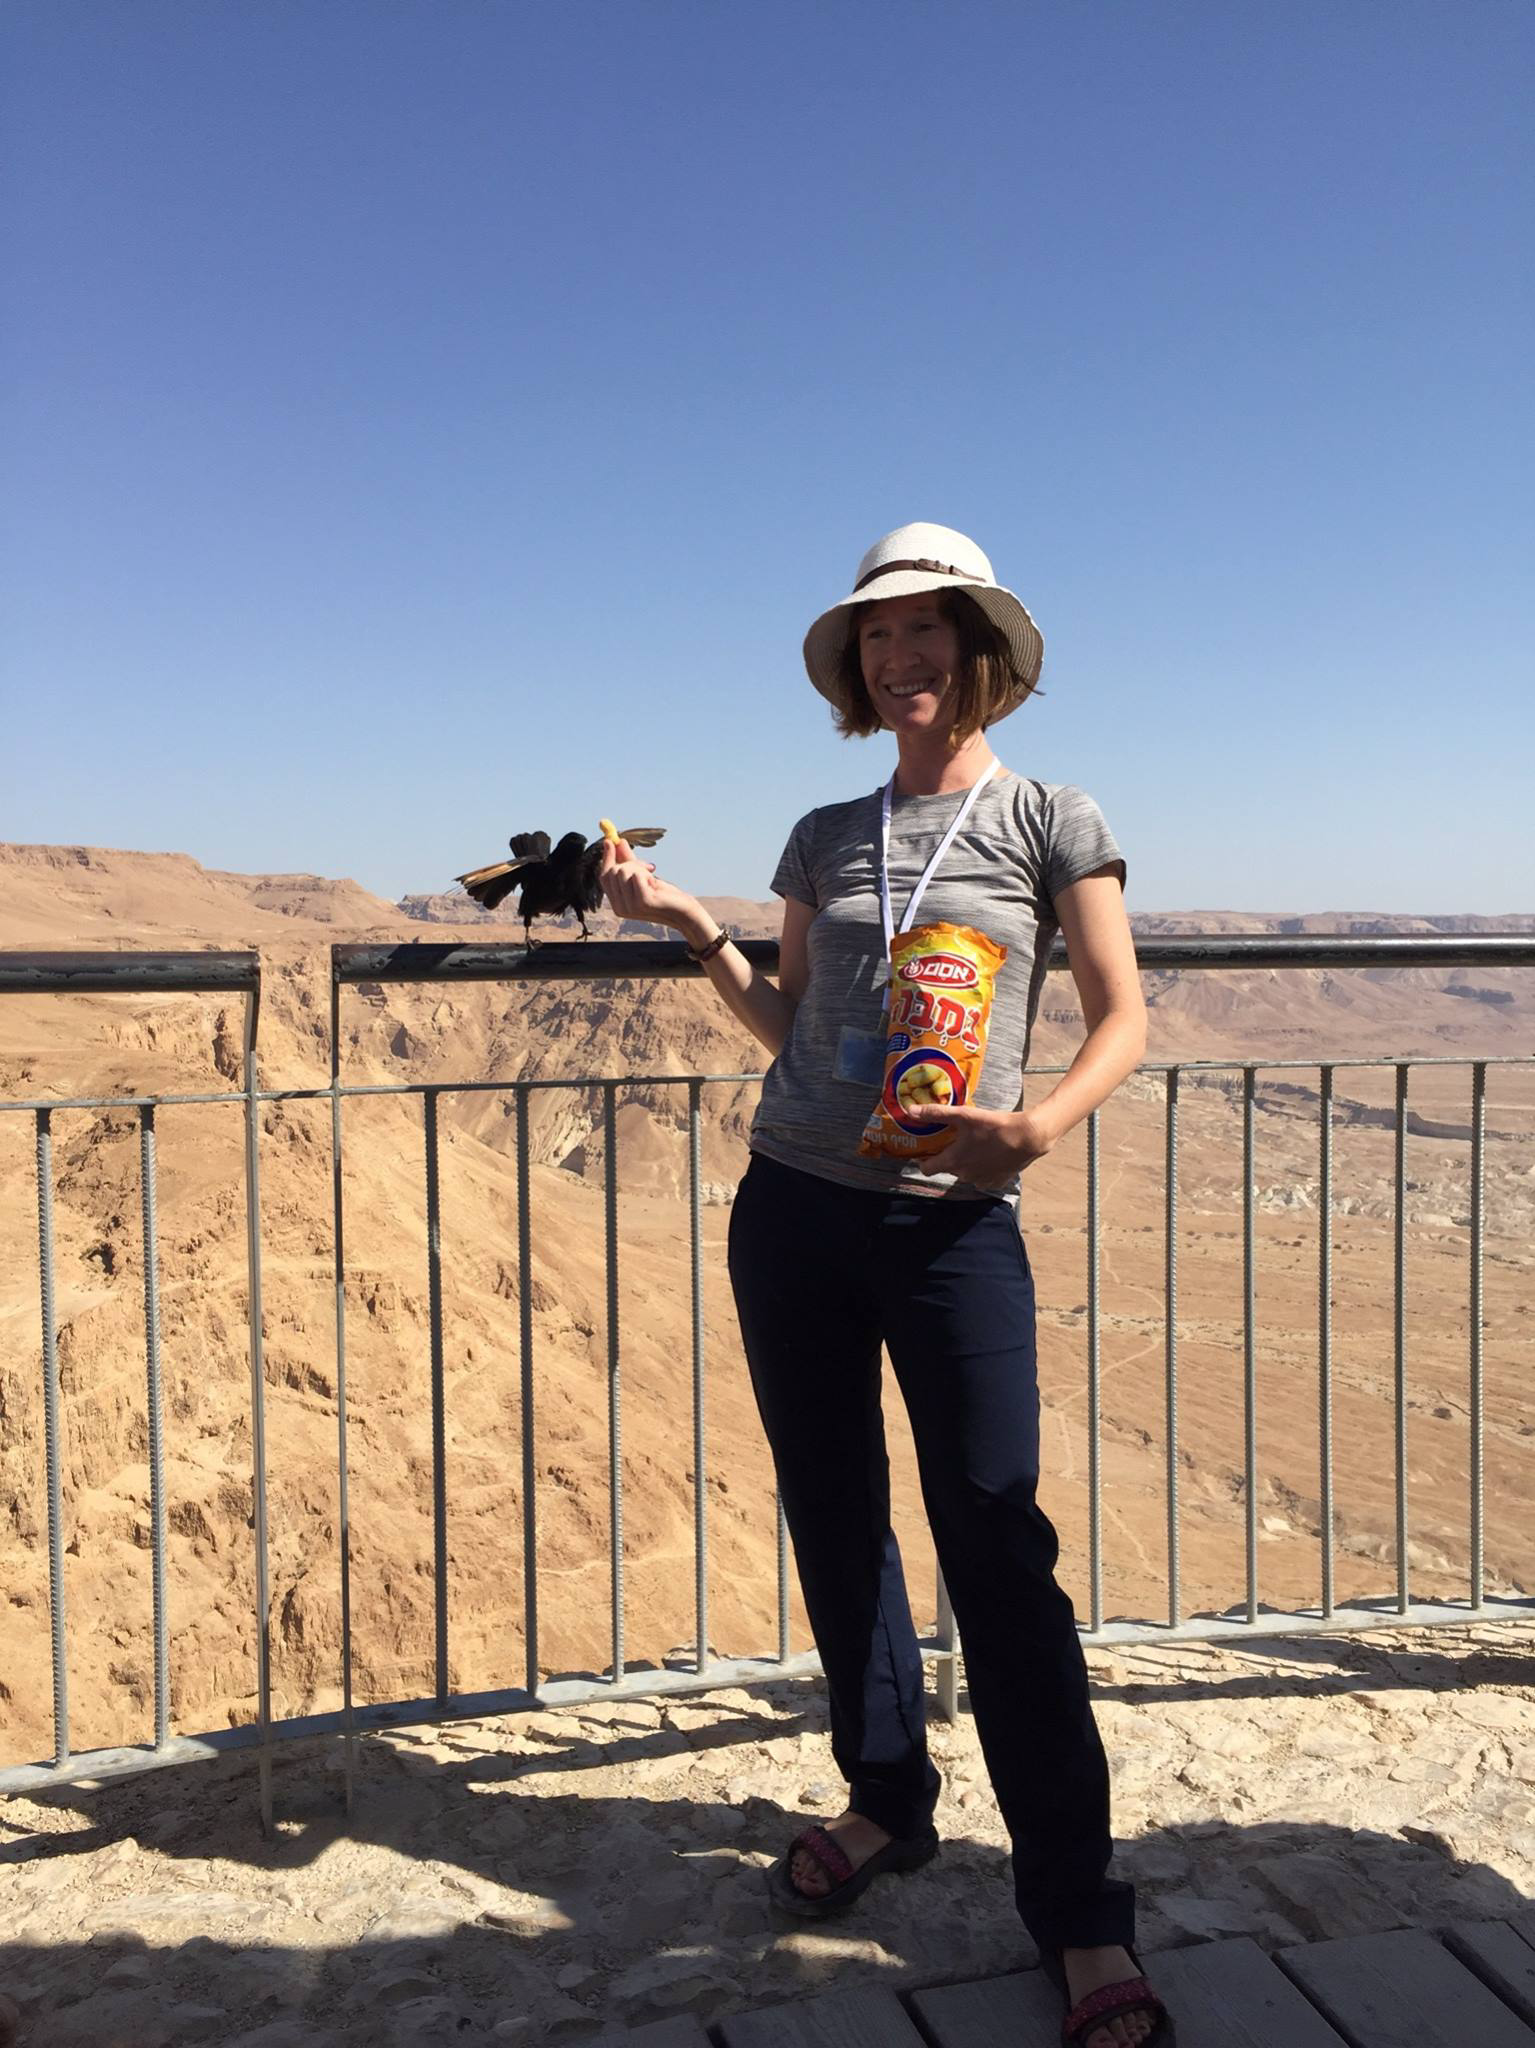 Feeding birds at Masada